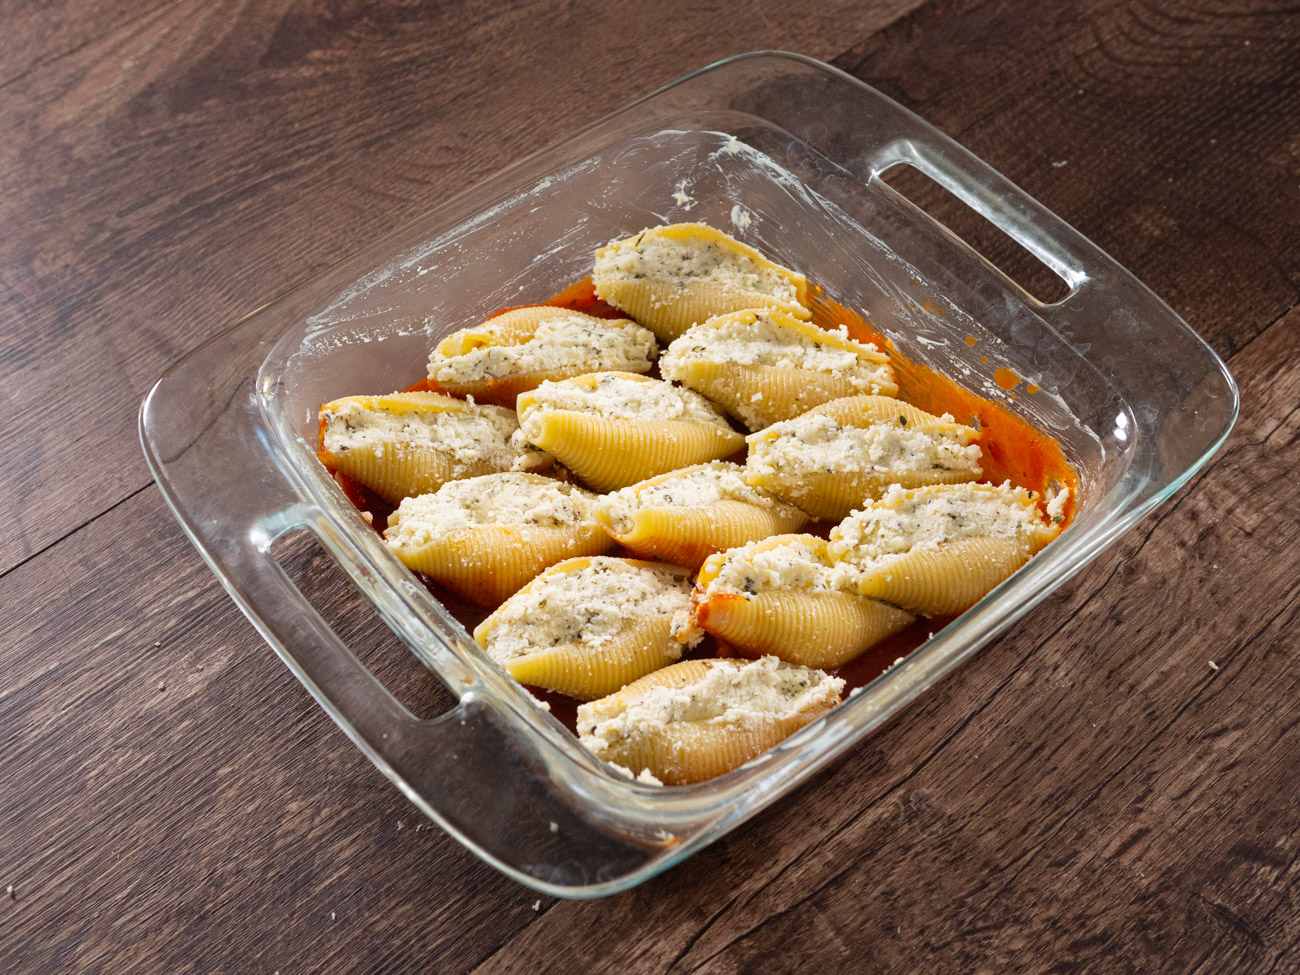 Stuff shells with 2 tablespoons of filling per shell and place each shell on top of marinara in baking pan. Cover tightly with aluminum foil and bake for 20 minutes.